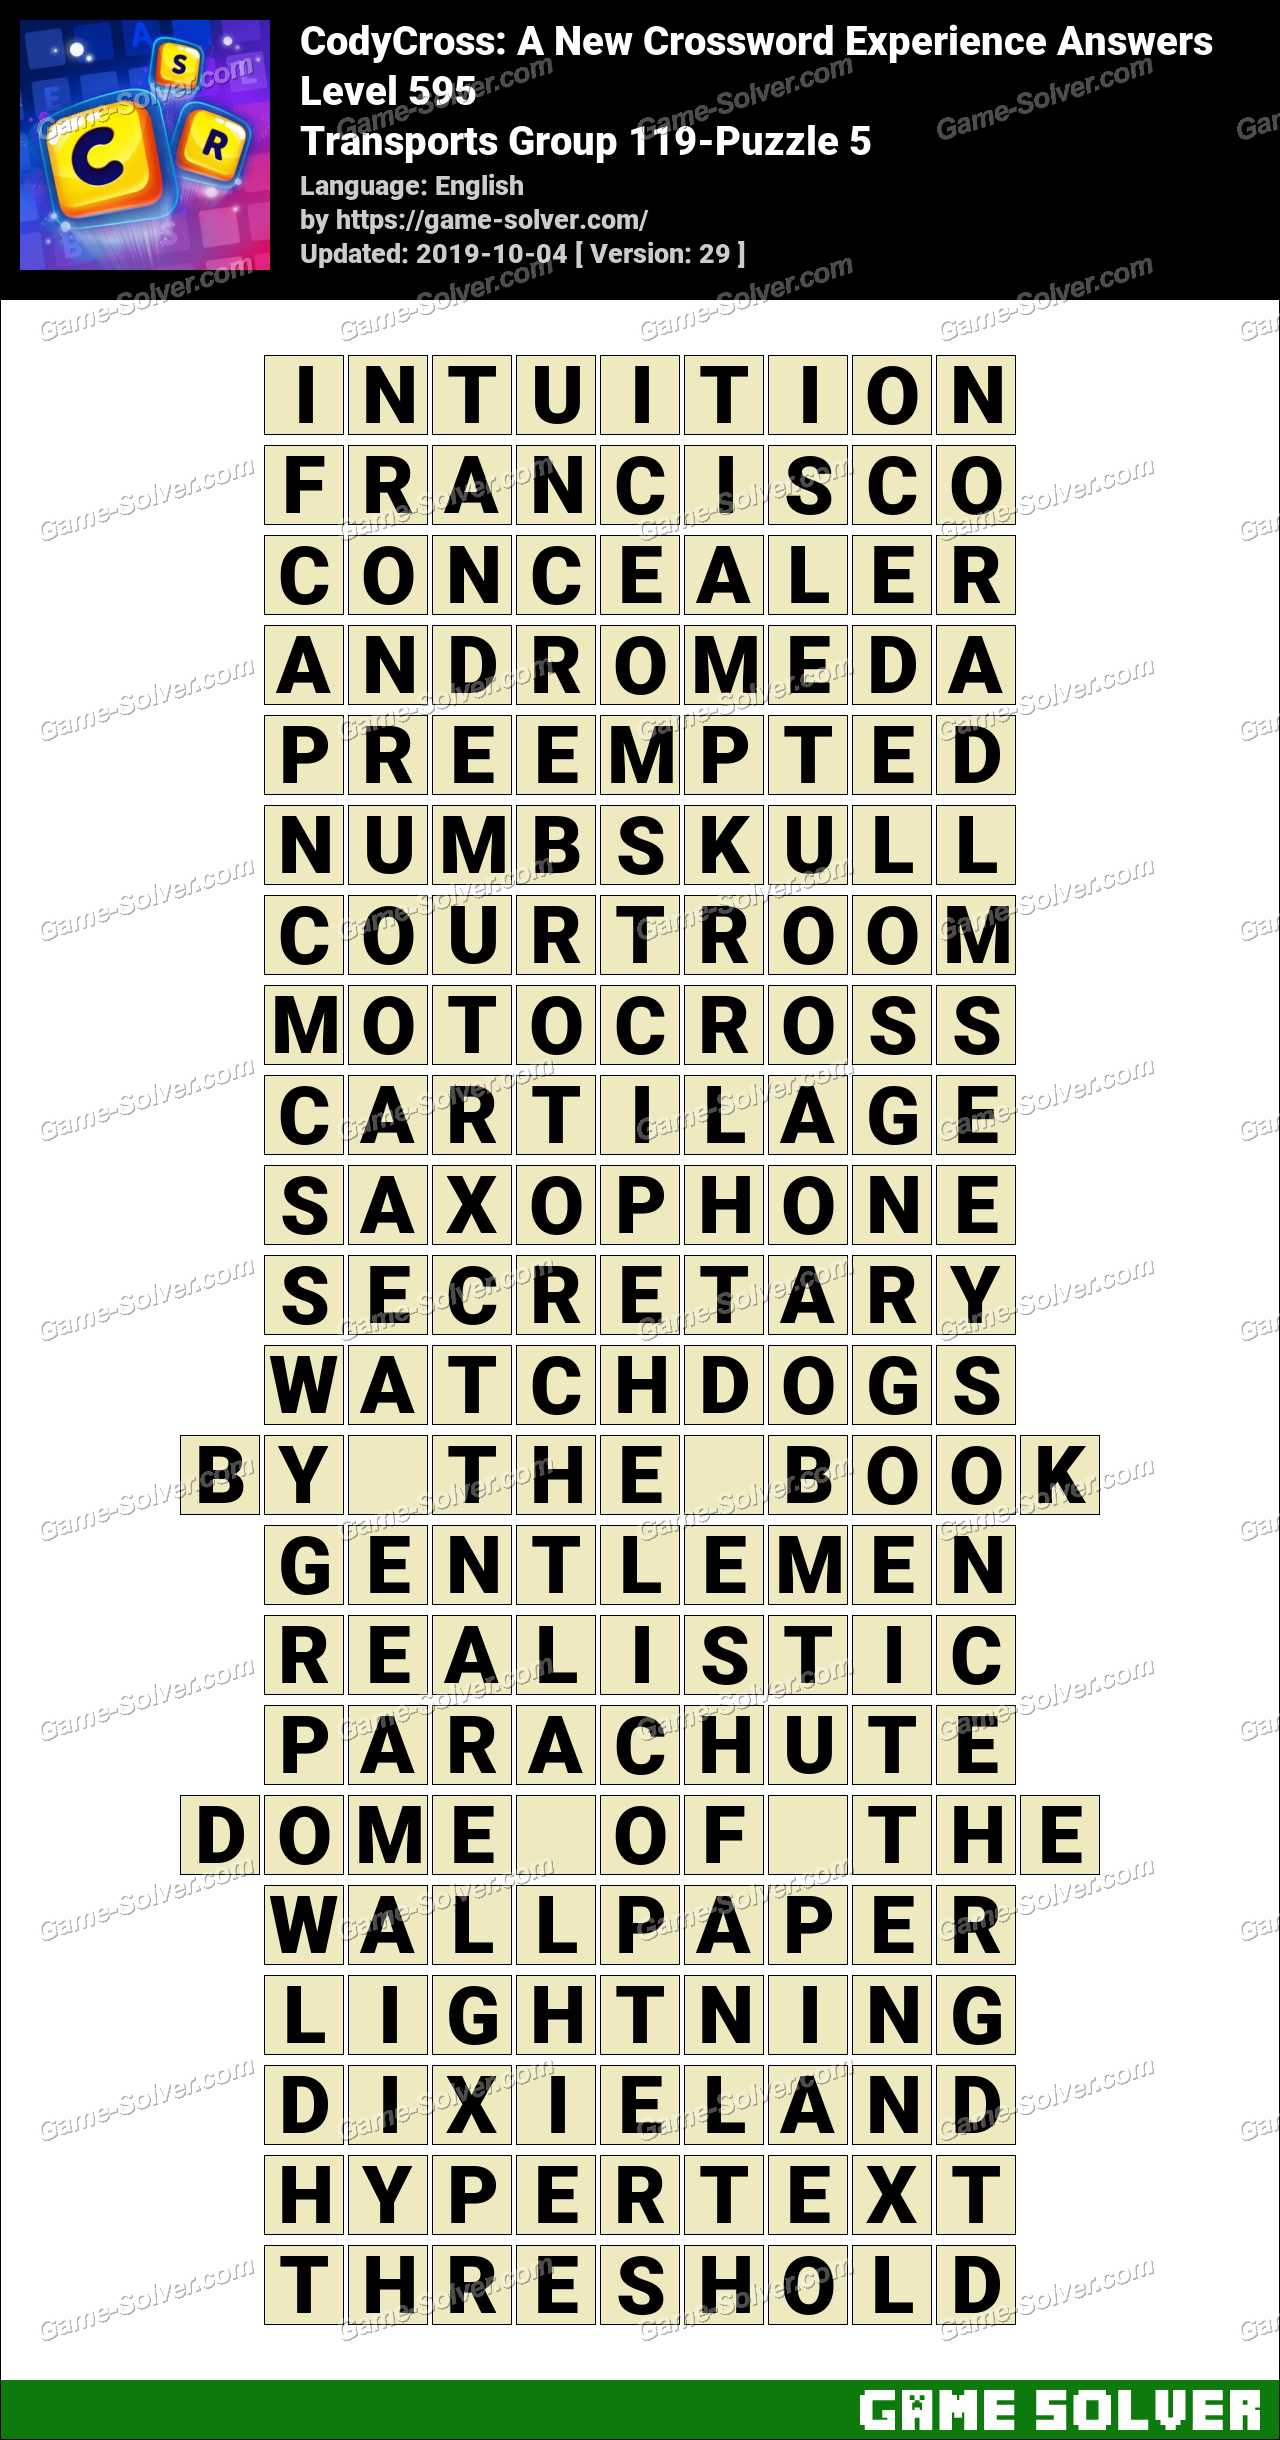 CodyCross Transports Group 119-Puzzle 5 Answers